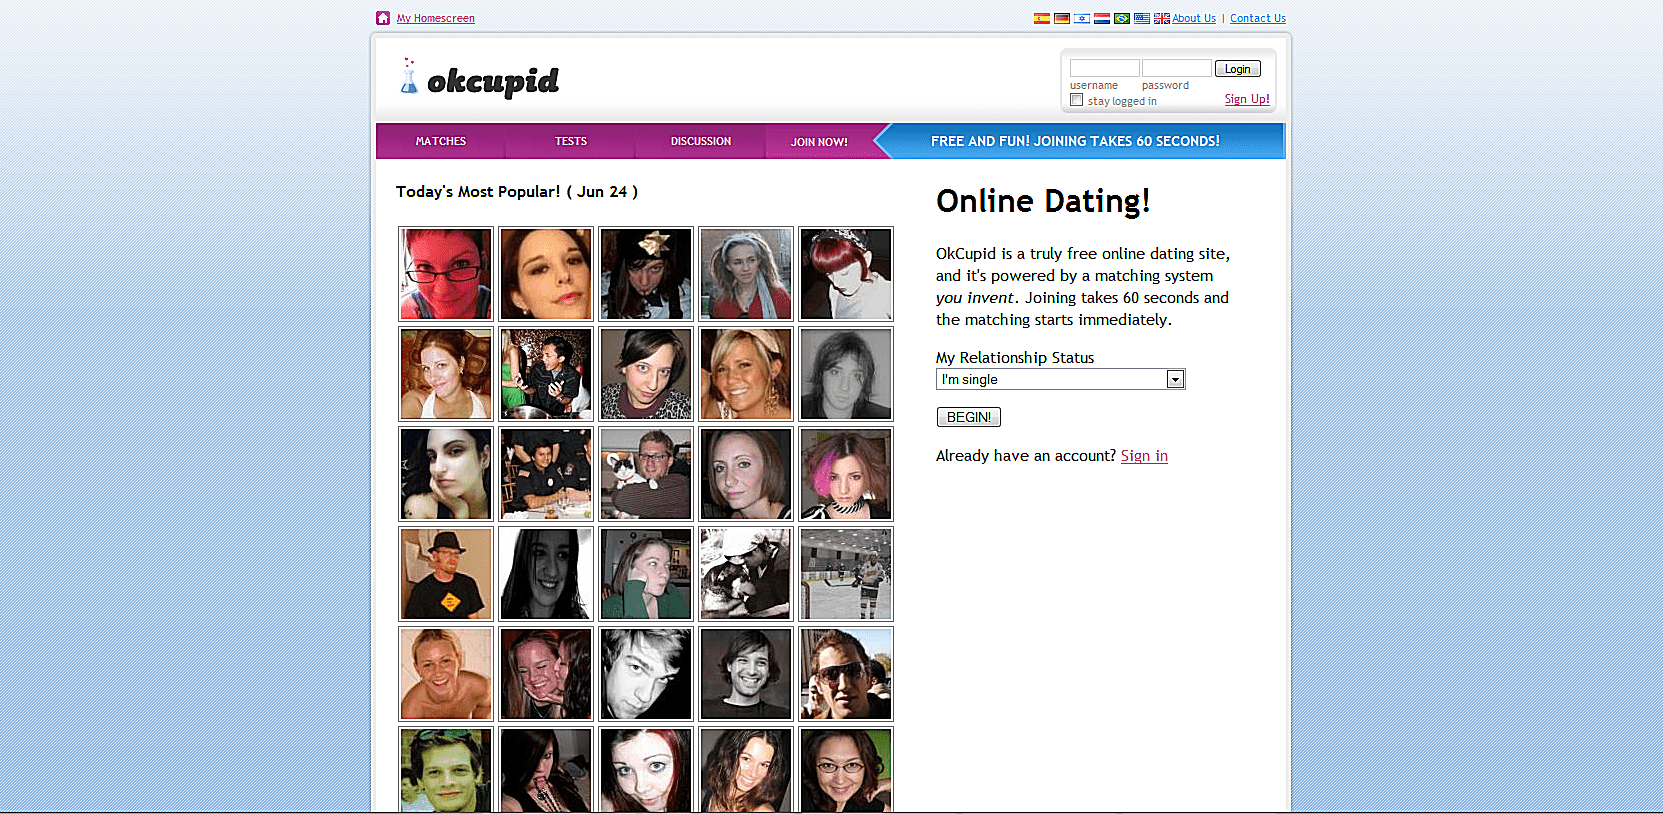 Okcupid com free online dating